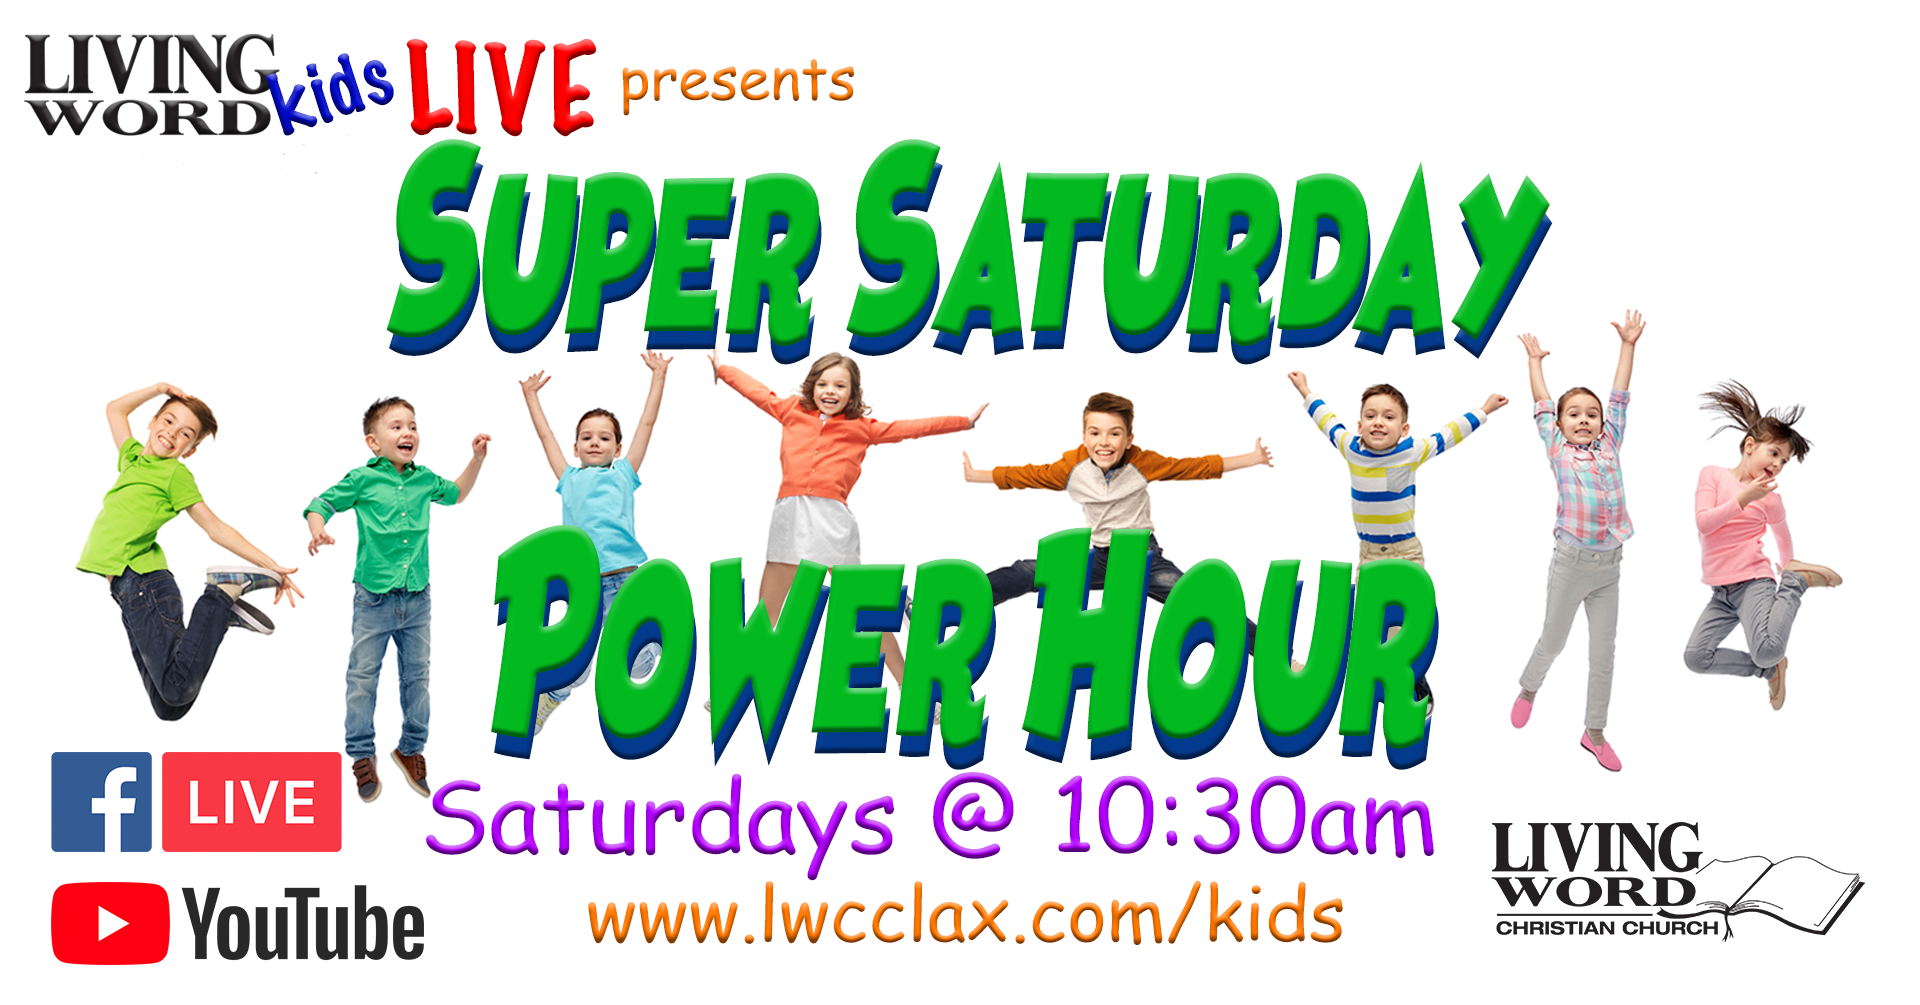 Living Word Kids LIVE presents Super Saturday Power Hour